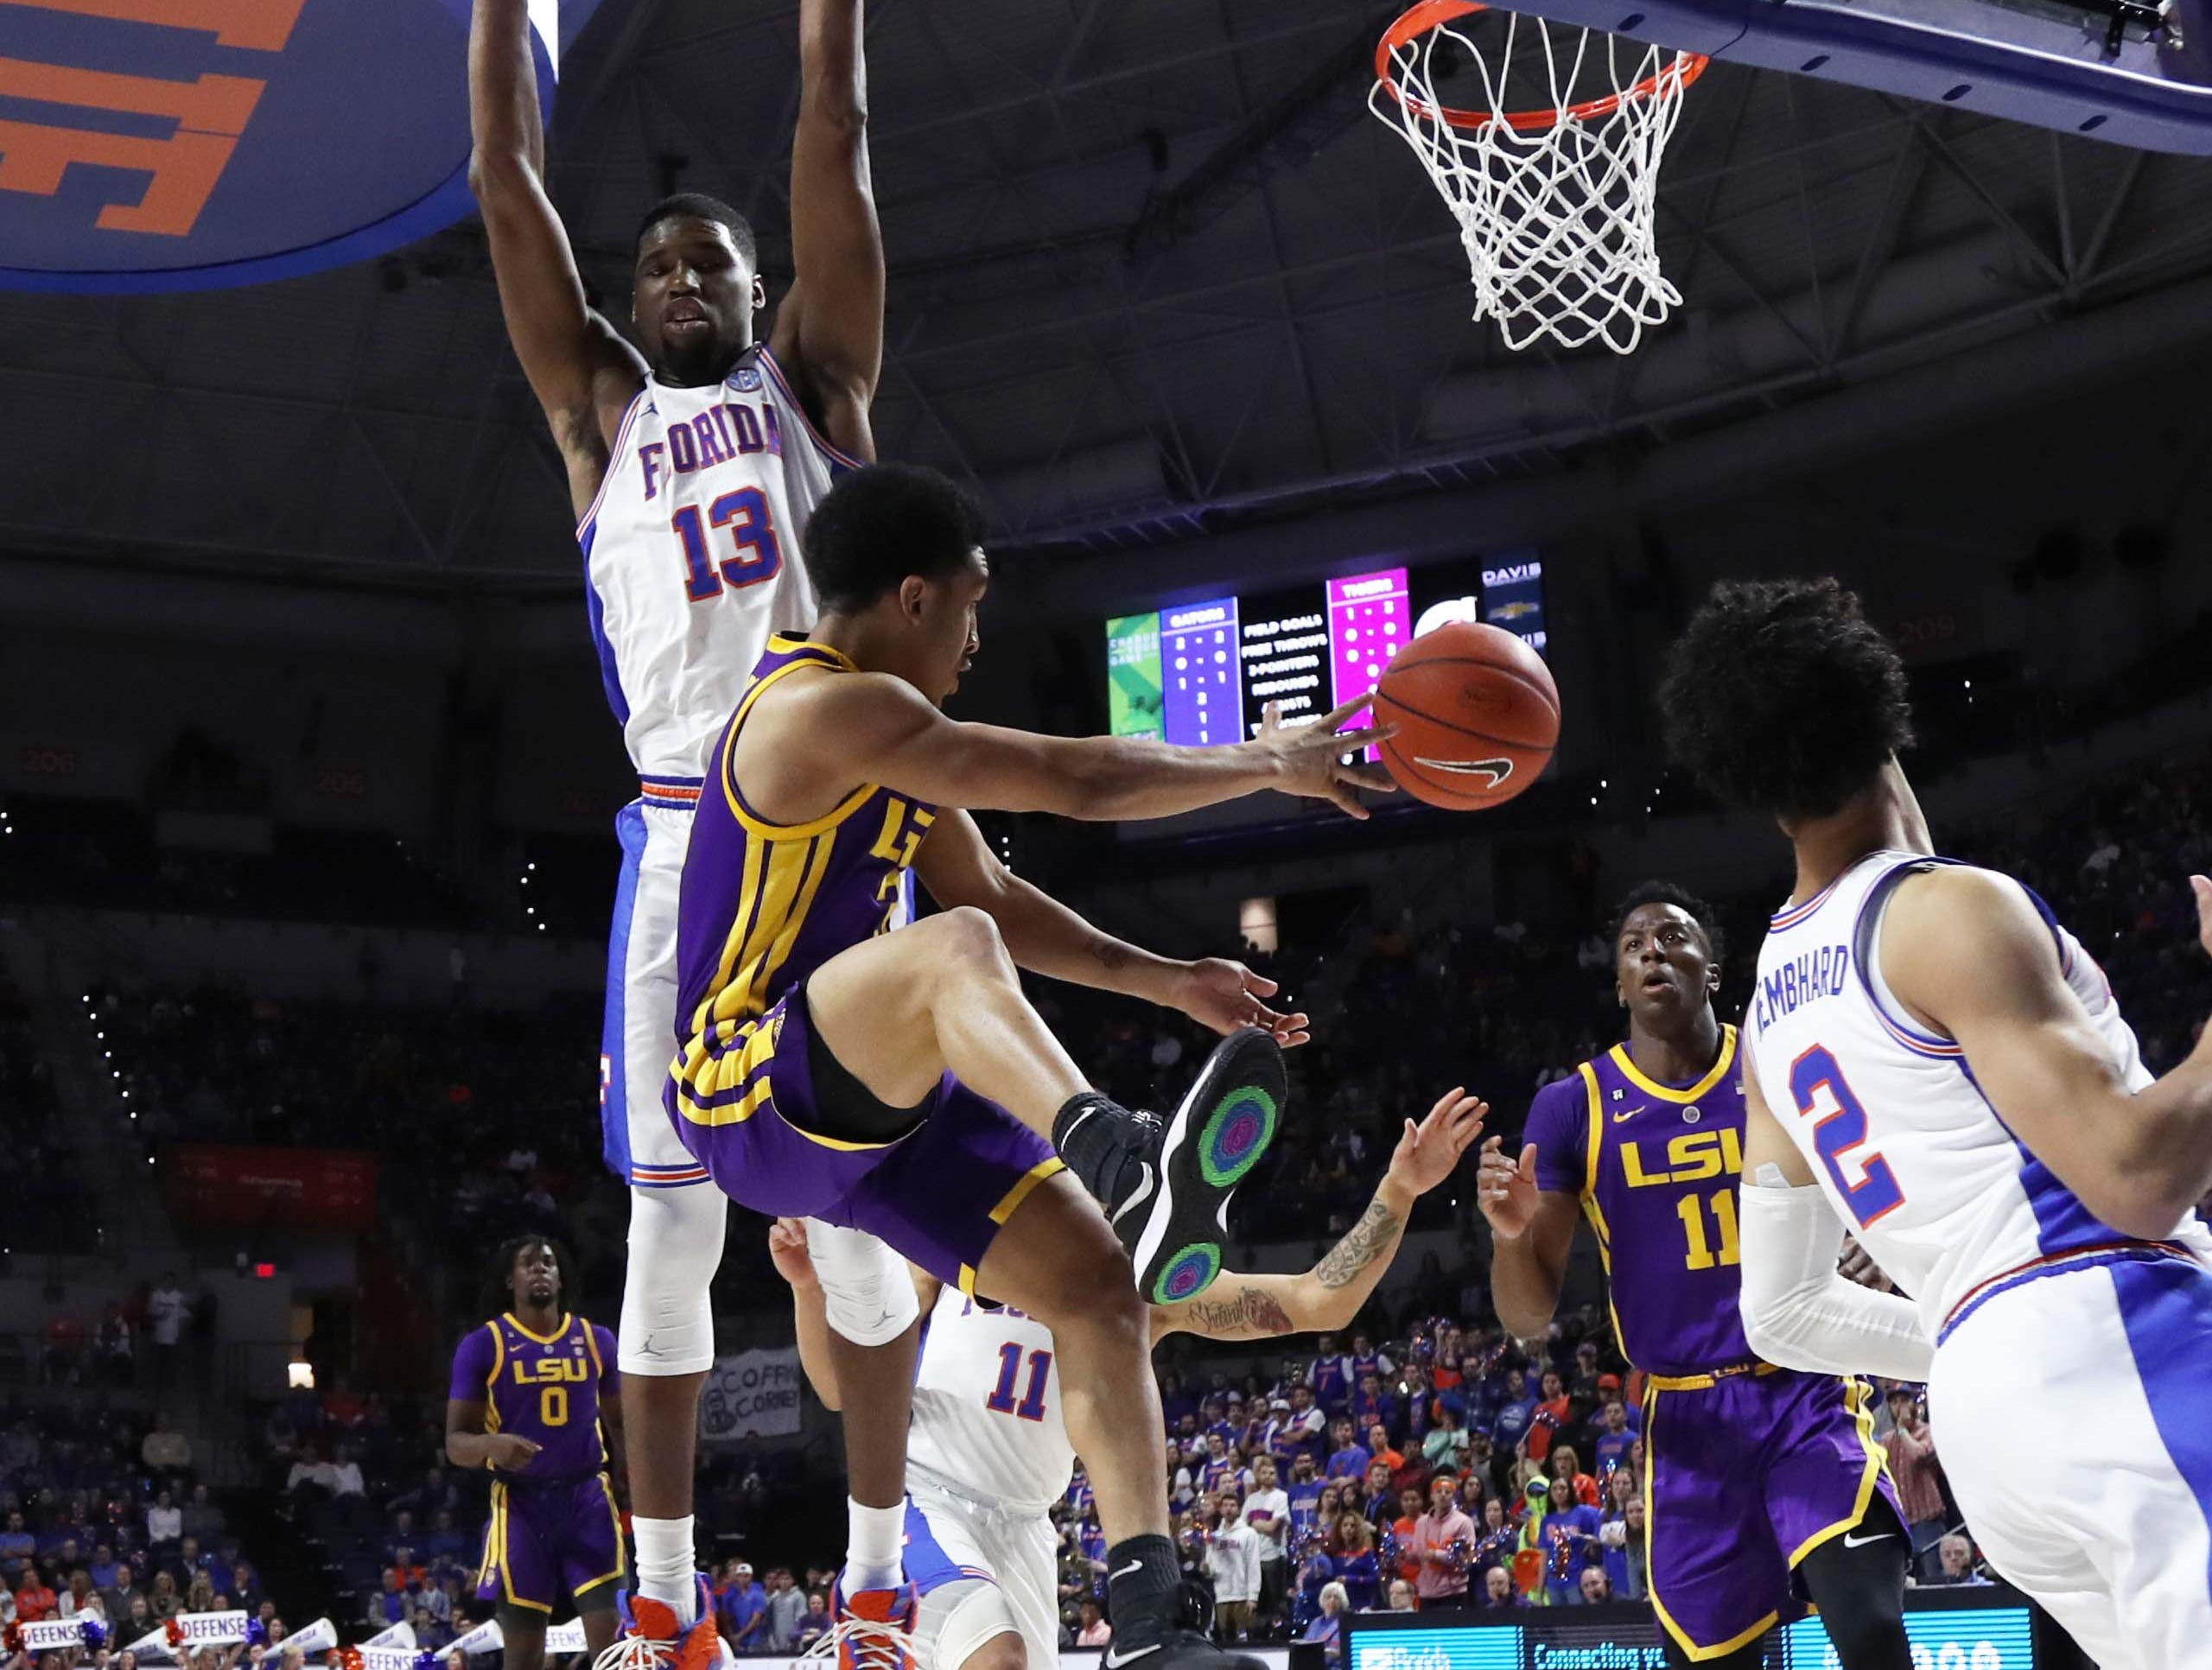 Mar 6, 2019; Gainesville, FL, USA; Florida Gators center Kevarrius Hayes (13) defends LSU Tigers guard Tremont Waters (3) during the first half at Exactech Arena. Mandatory Credit: Kim Klement-USA TODAY Sports